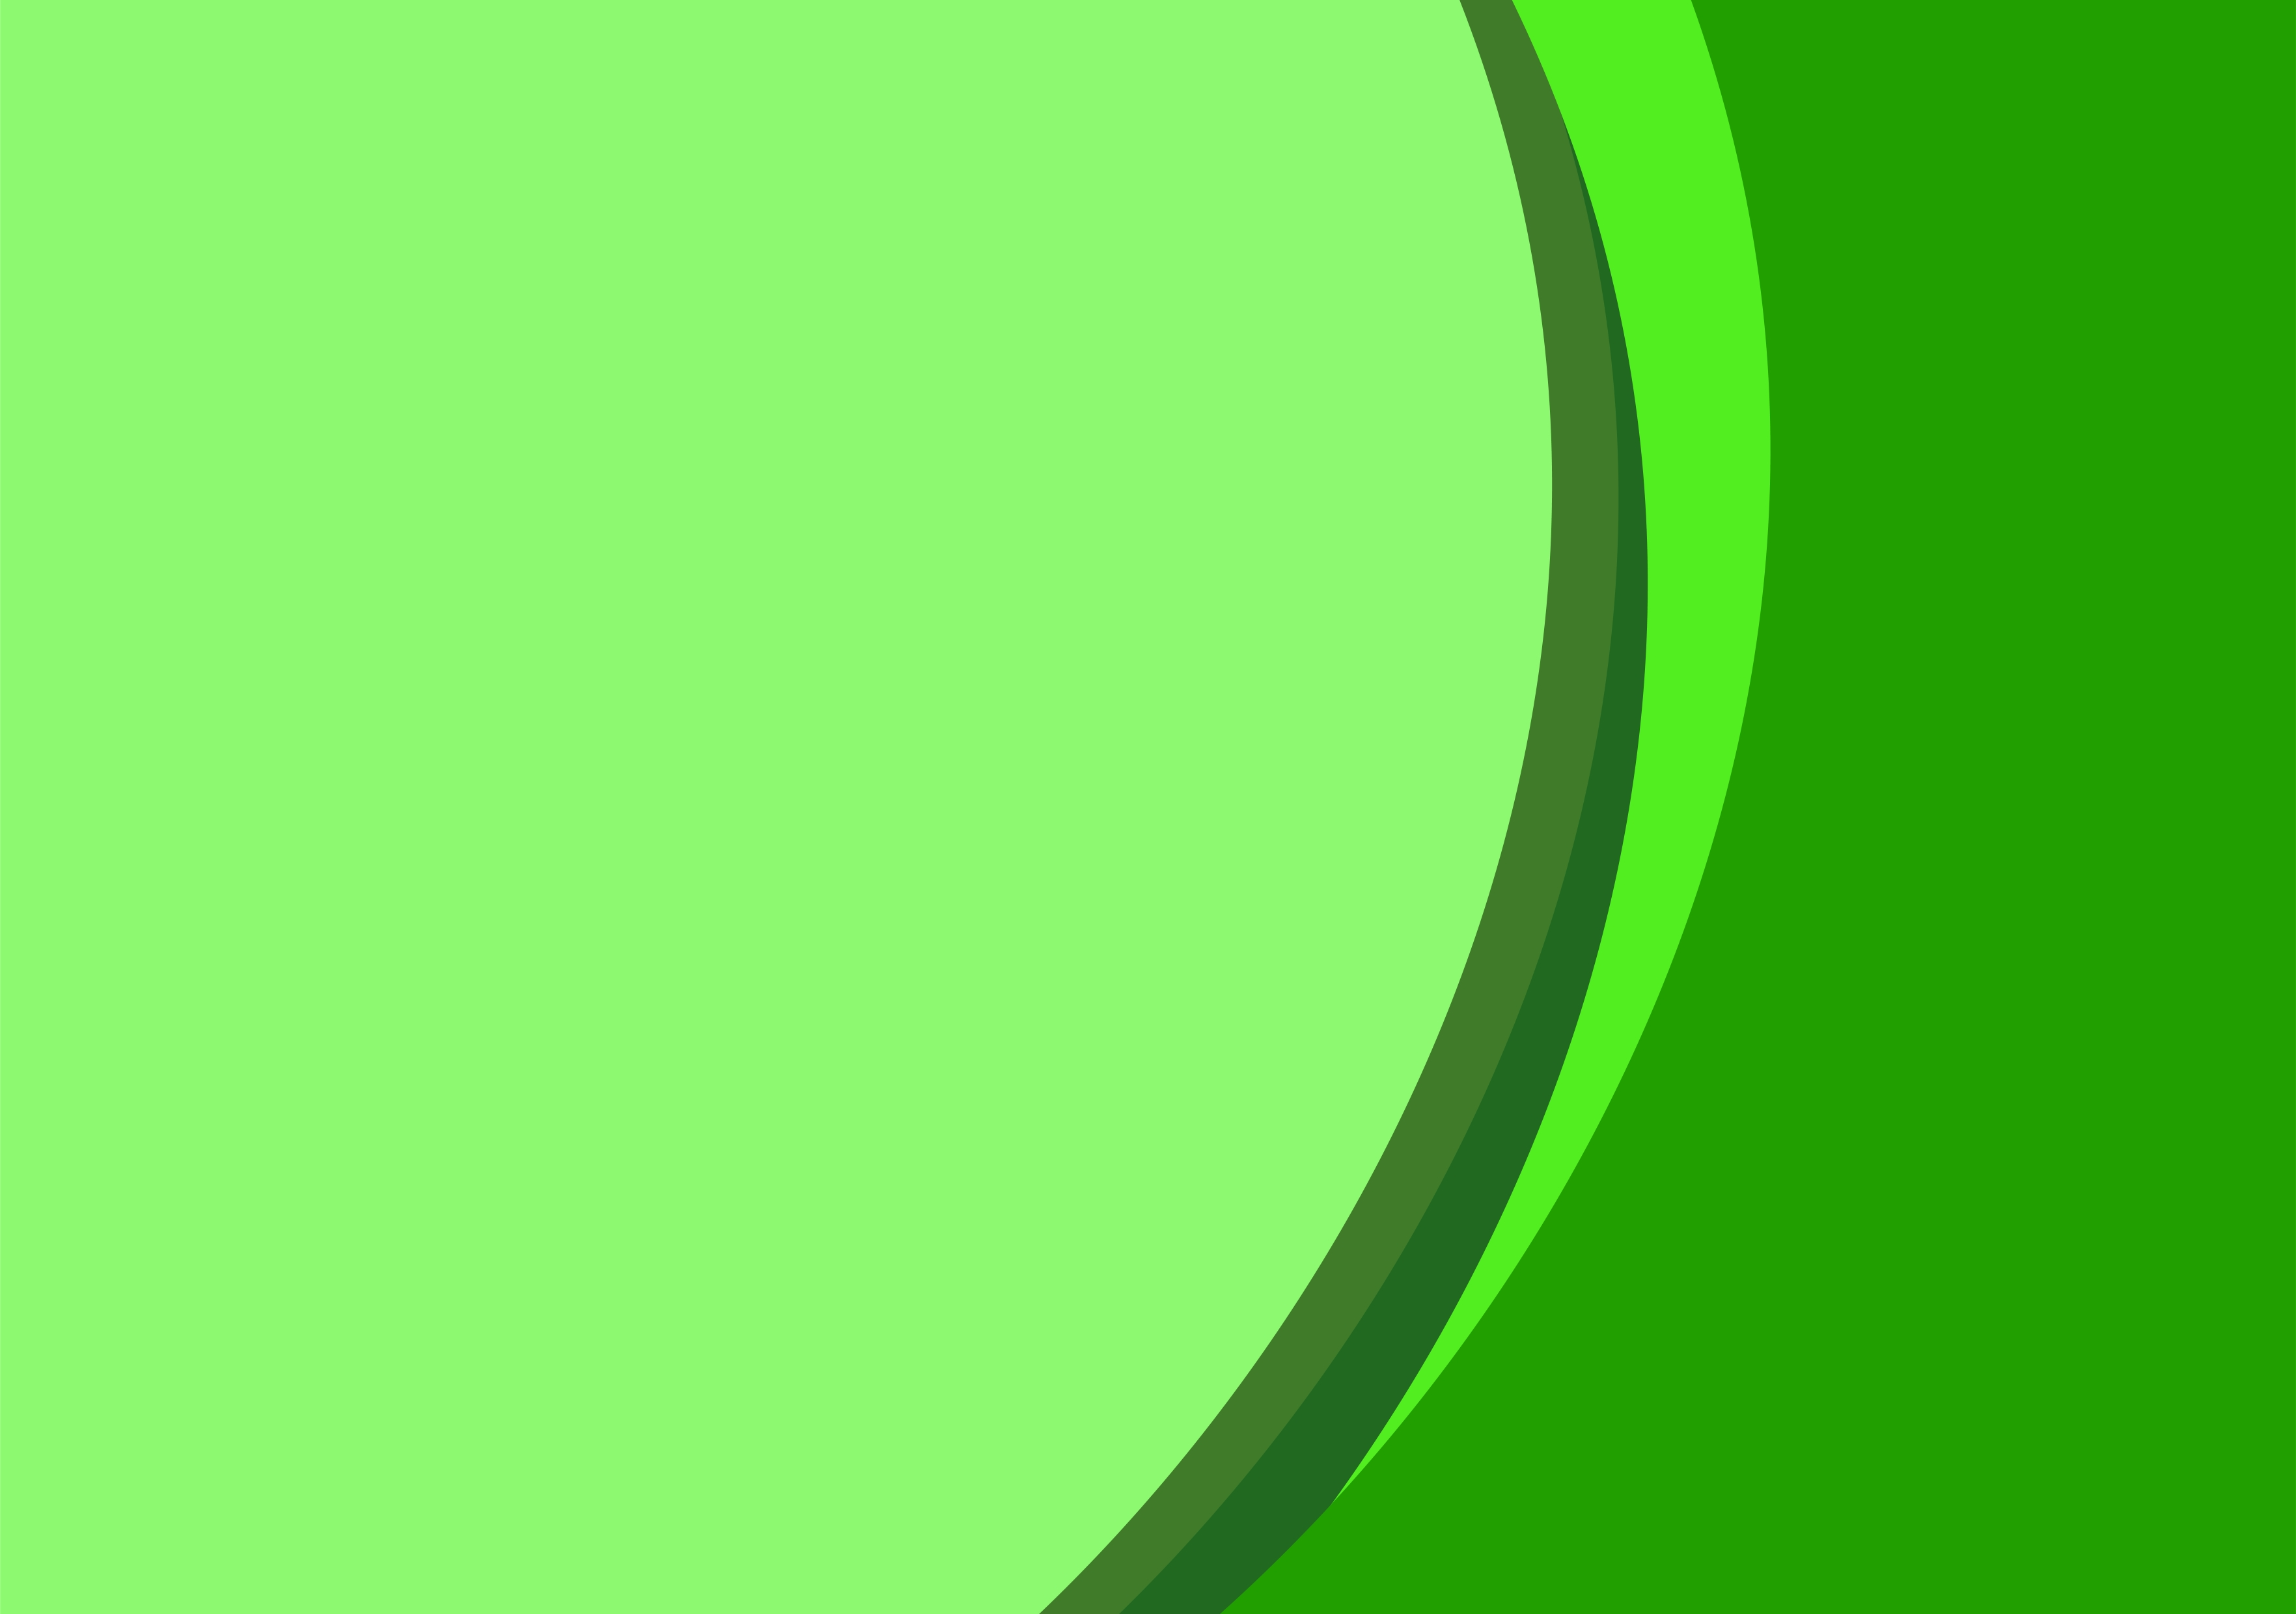 Simple Green Background Images at Clkercom   vector clip art 3527x2480